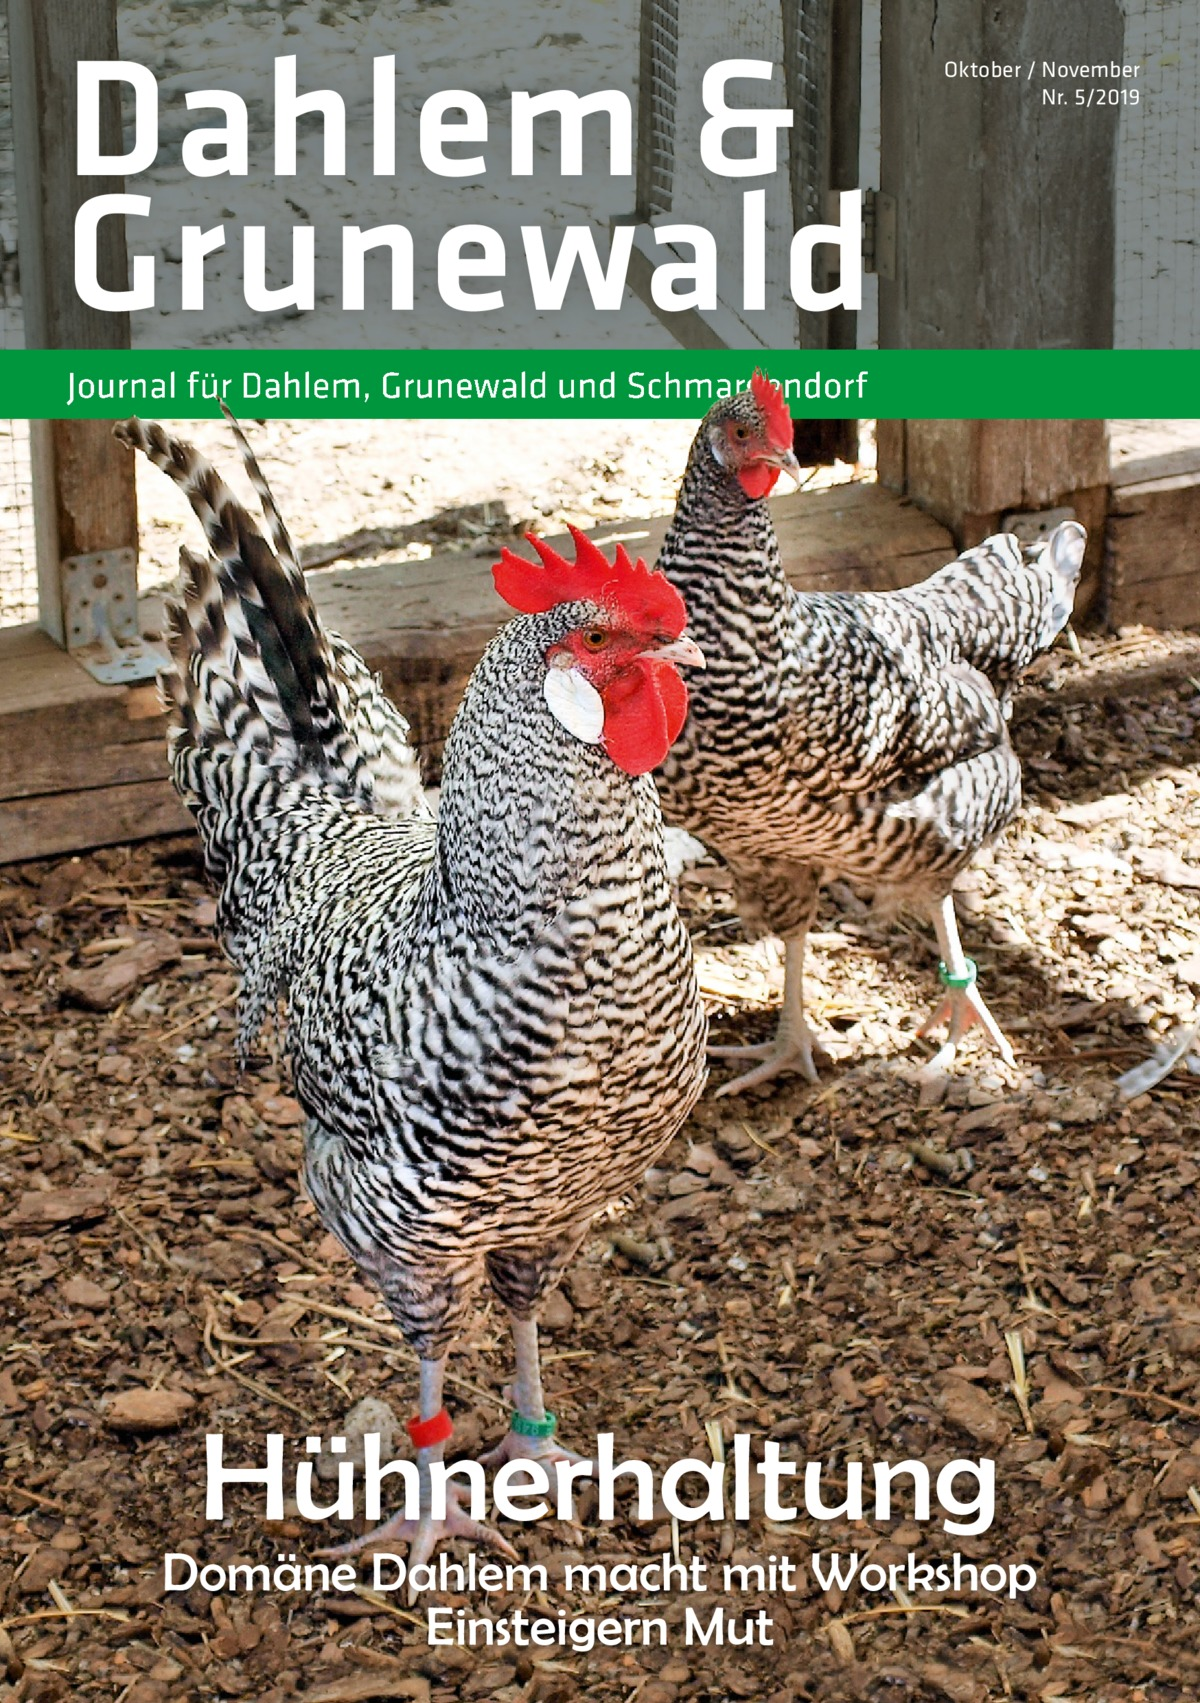 Dahlem und Grunewald Journal